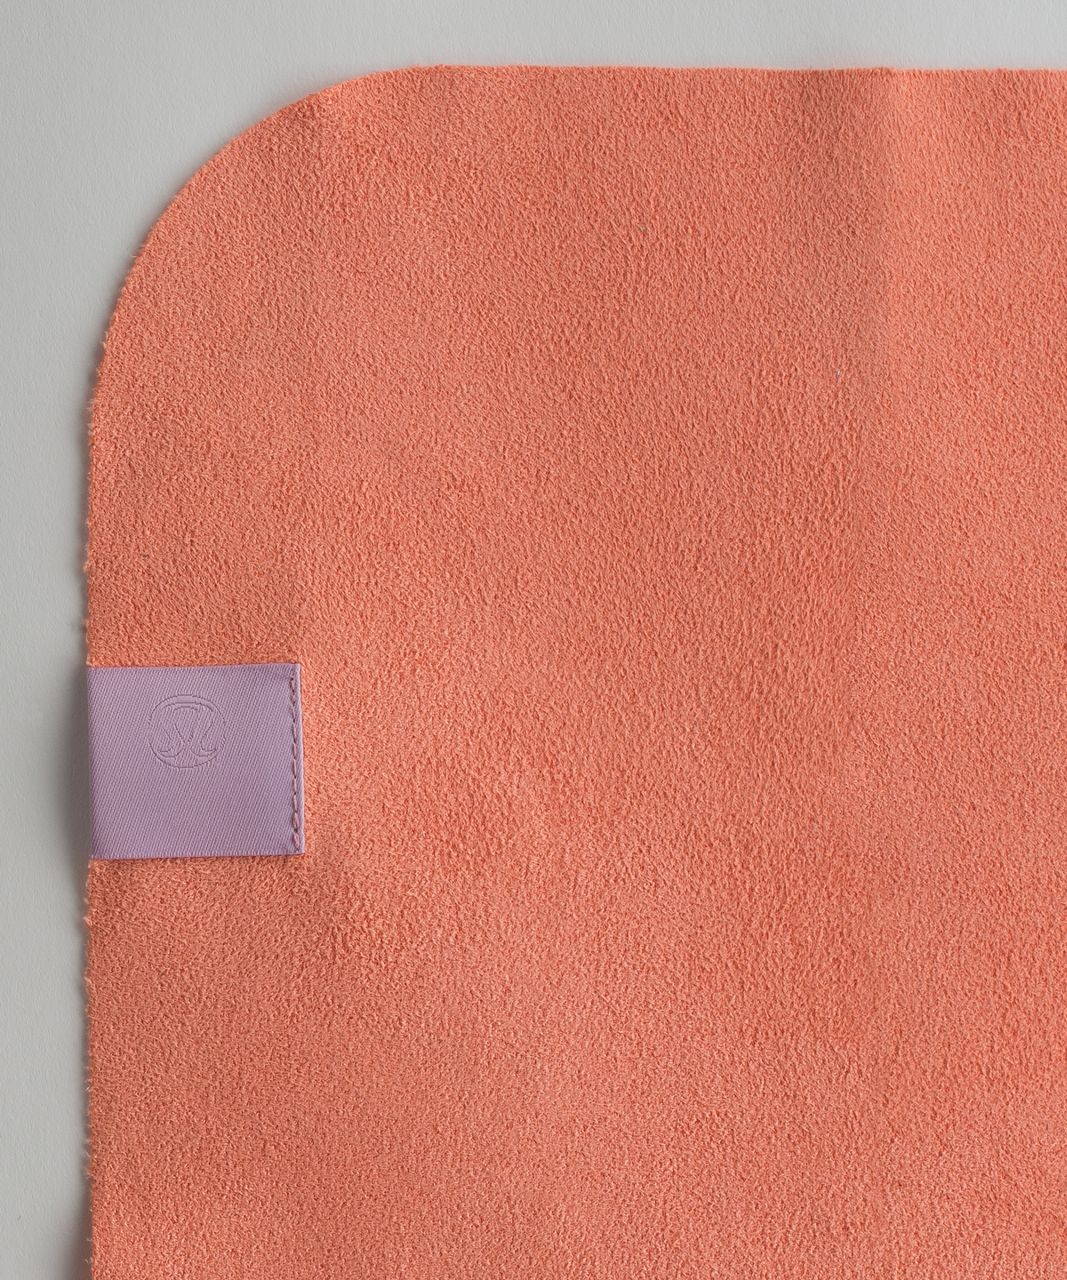 Lululemon The (Small) Towel - Plum Peach